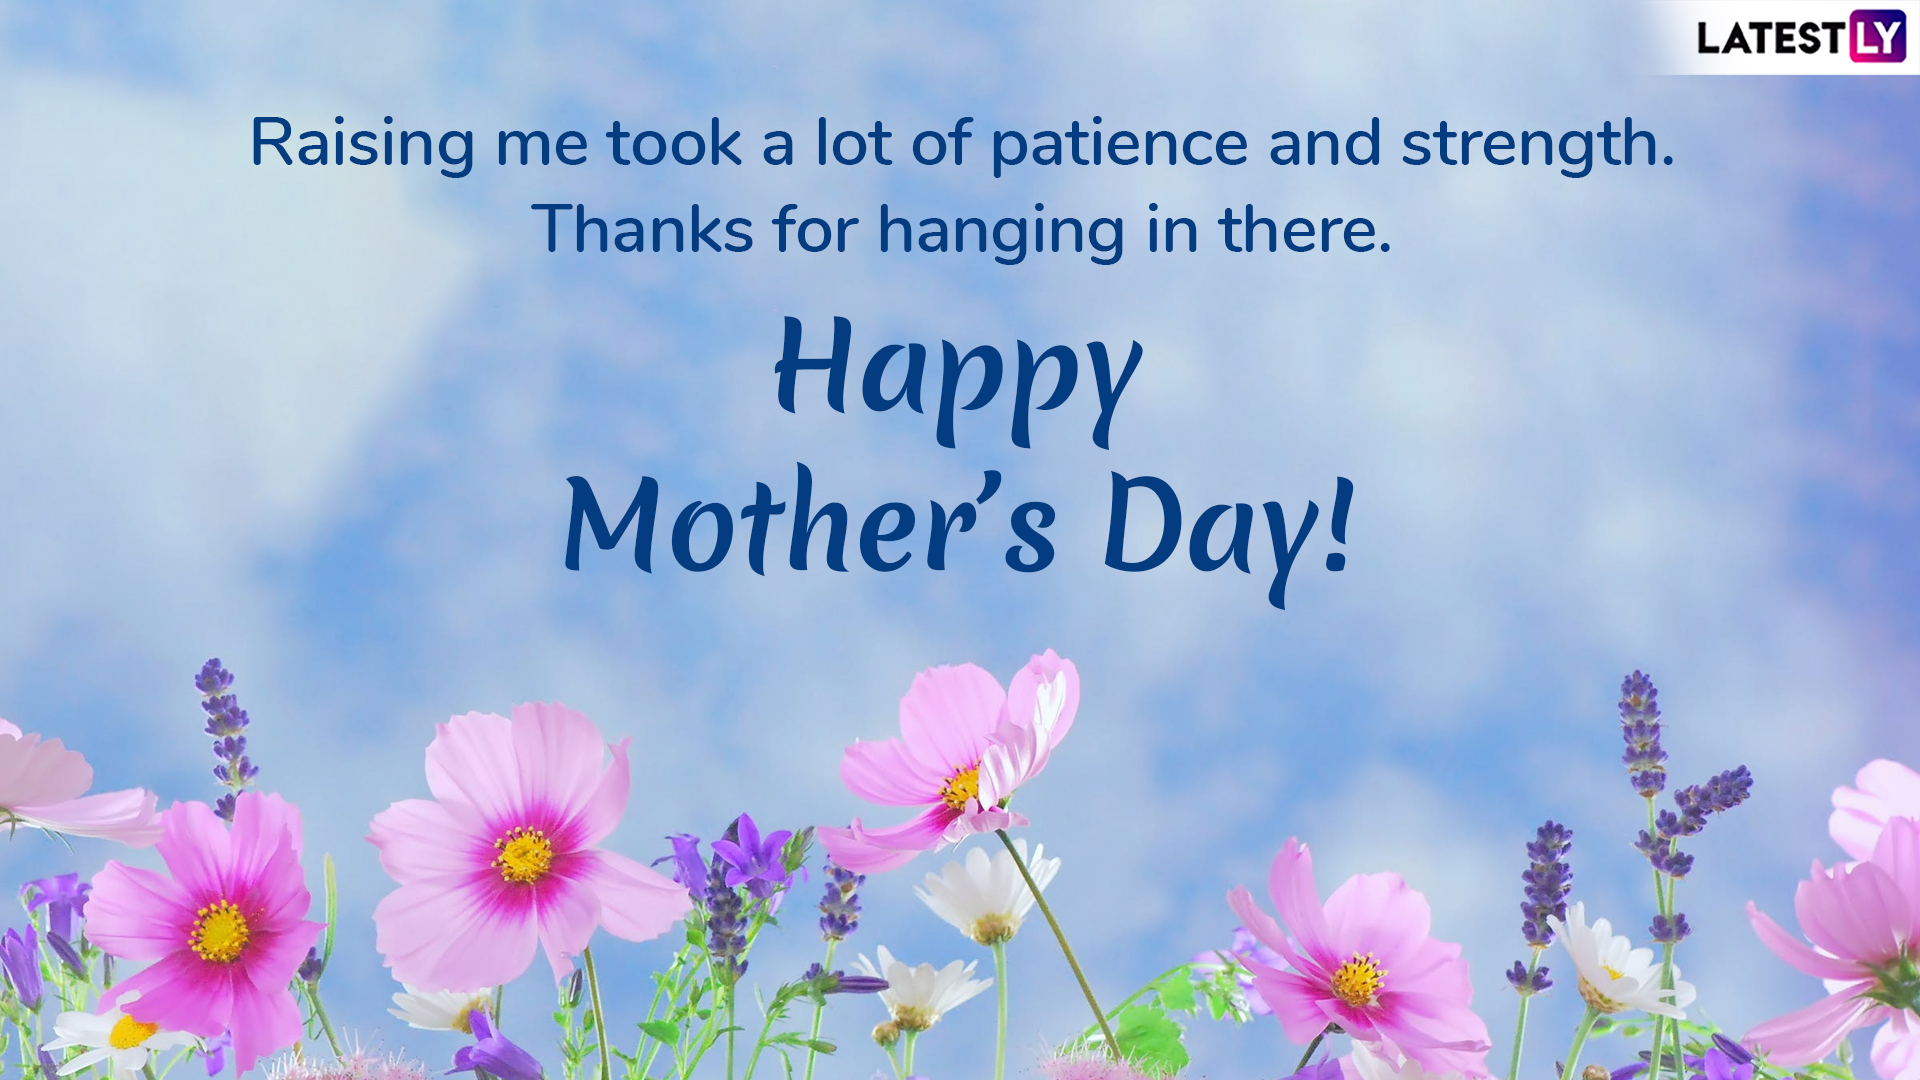 Happy Mother\'s Day 2019 Greeting Cards: Send These Wishes ...